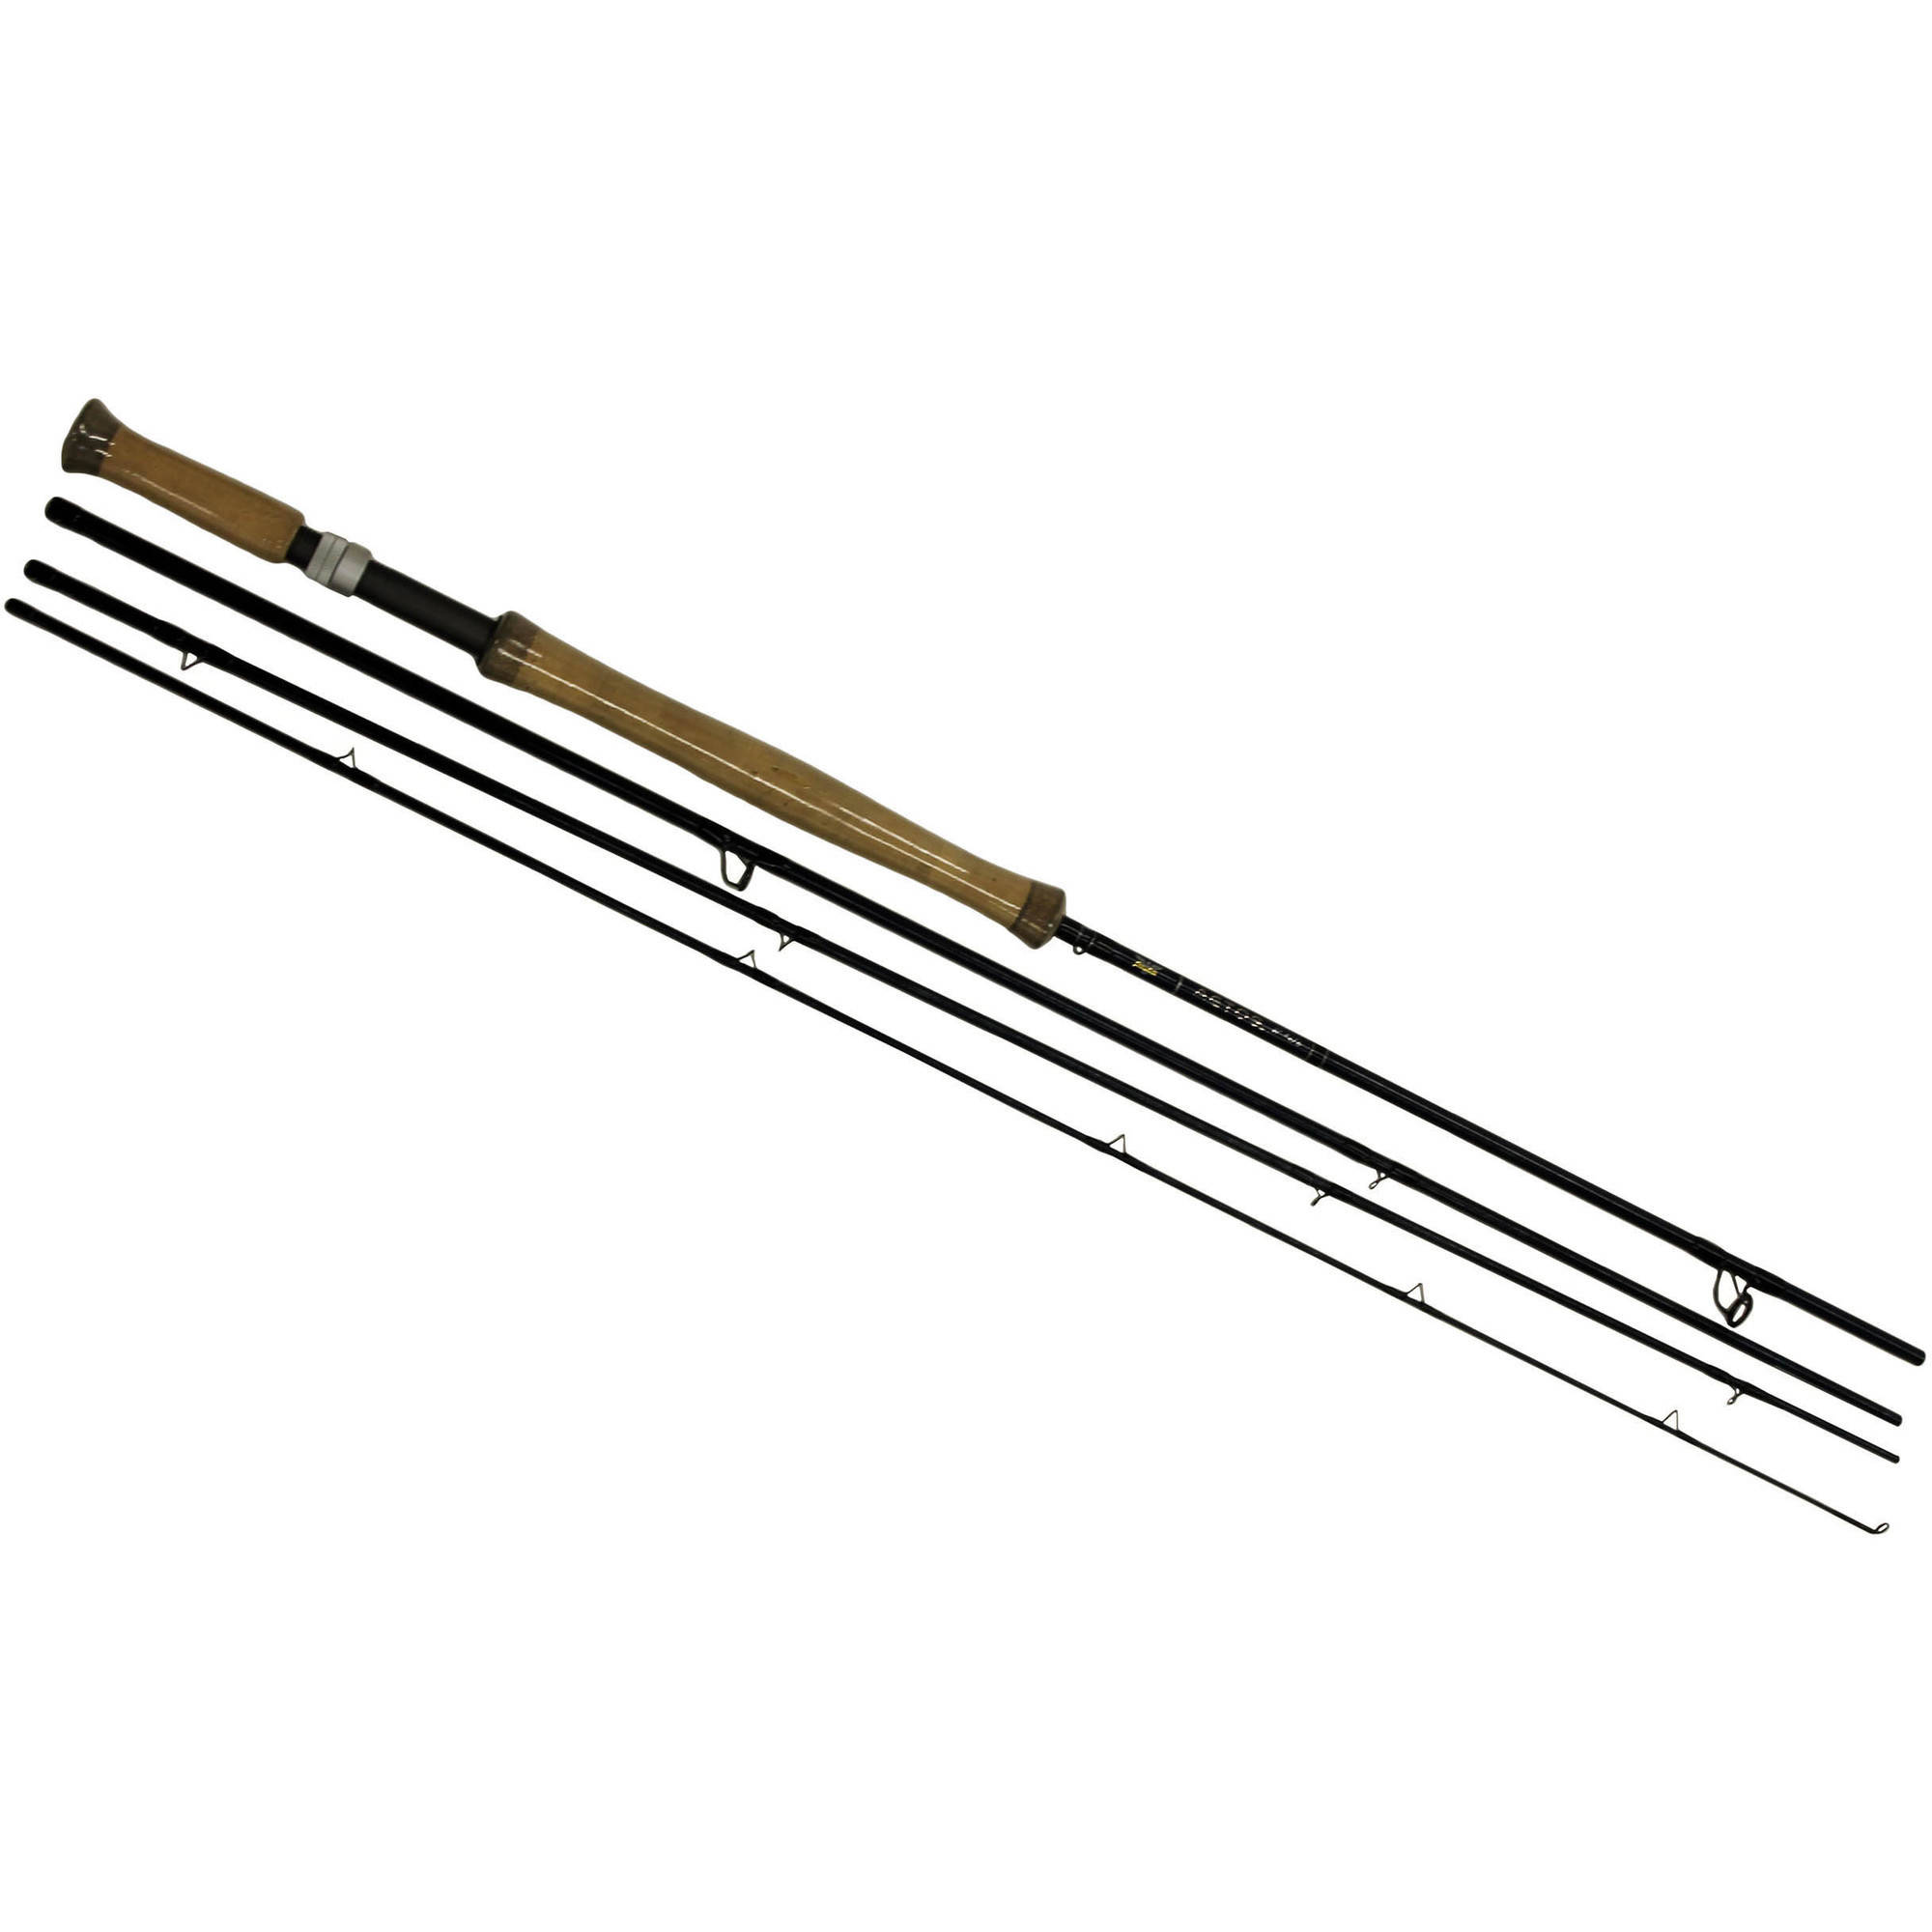 Fenwick Eagle series, 4 Piece Rod, Fly Power, Fast Action